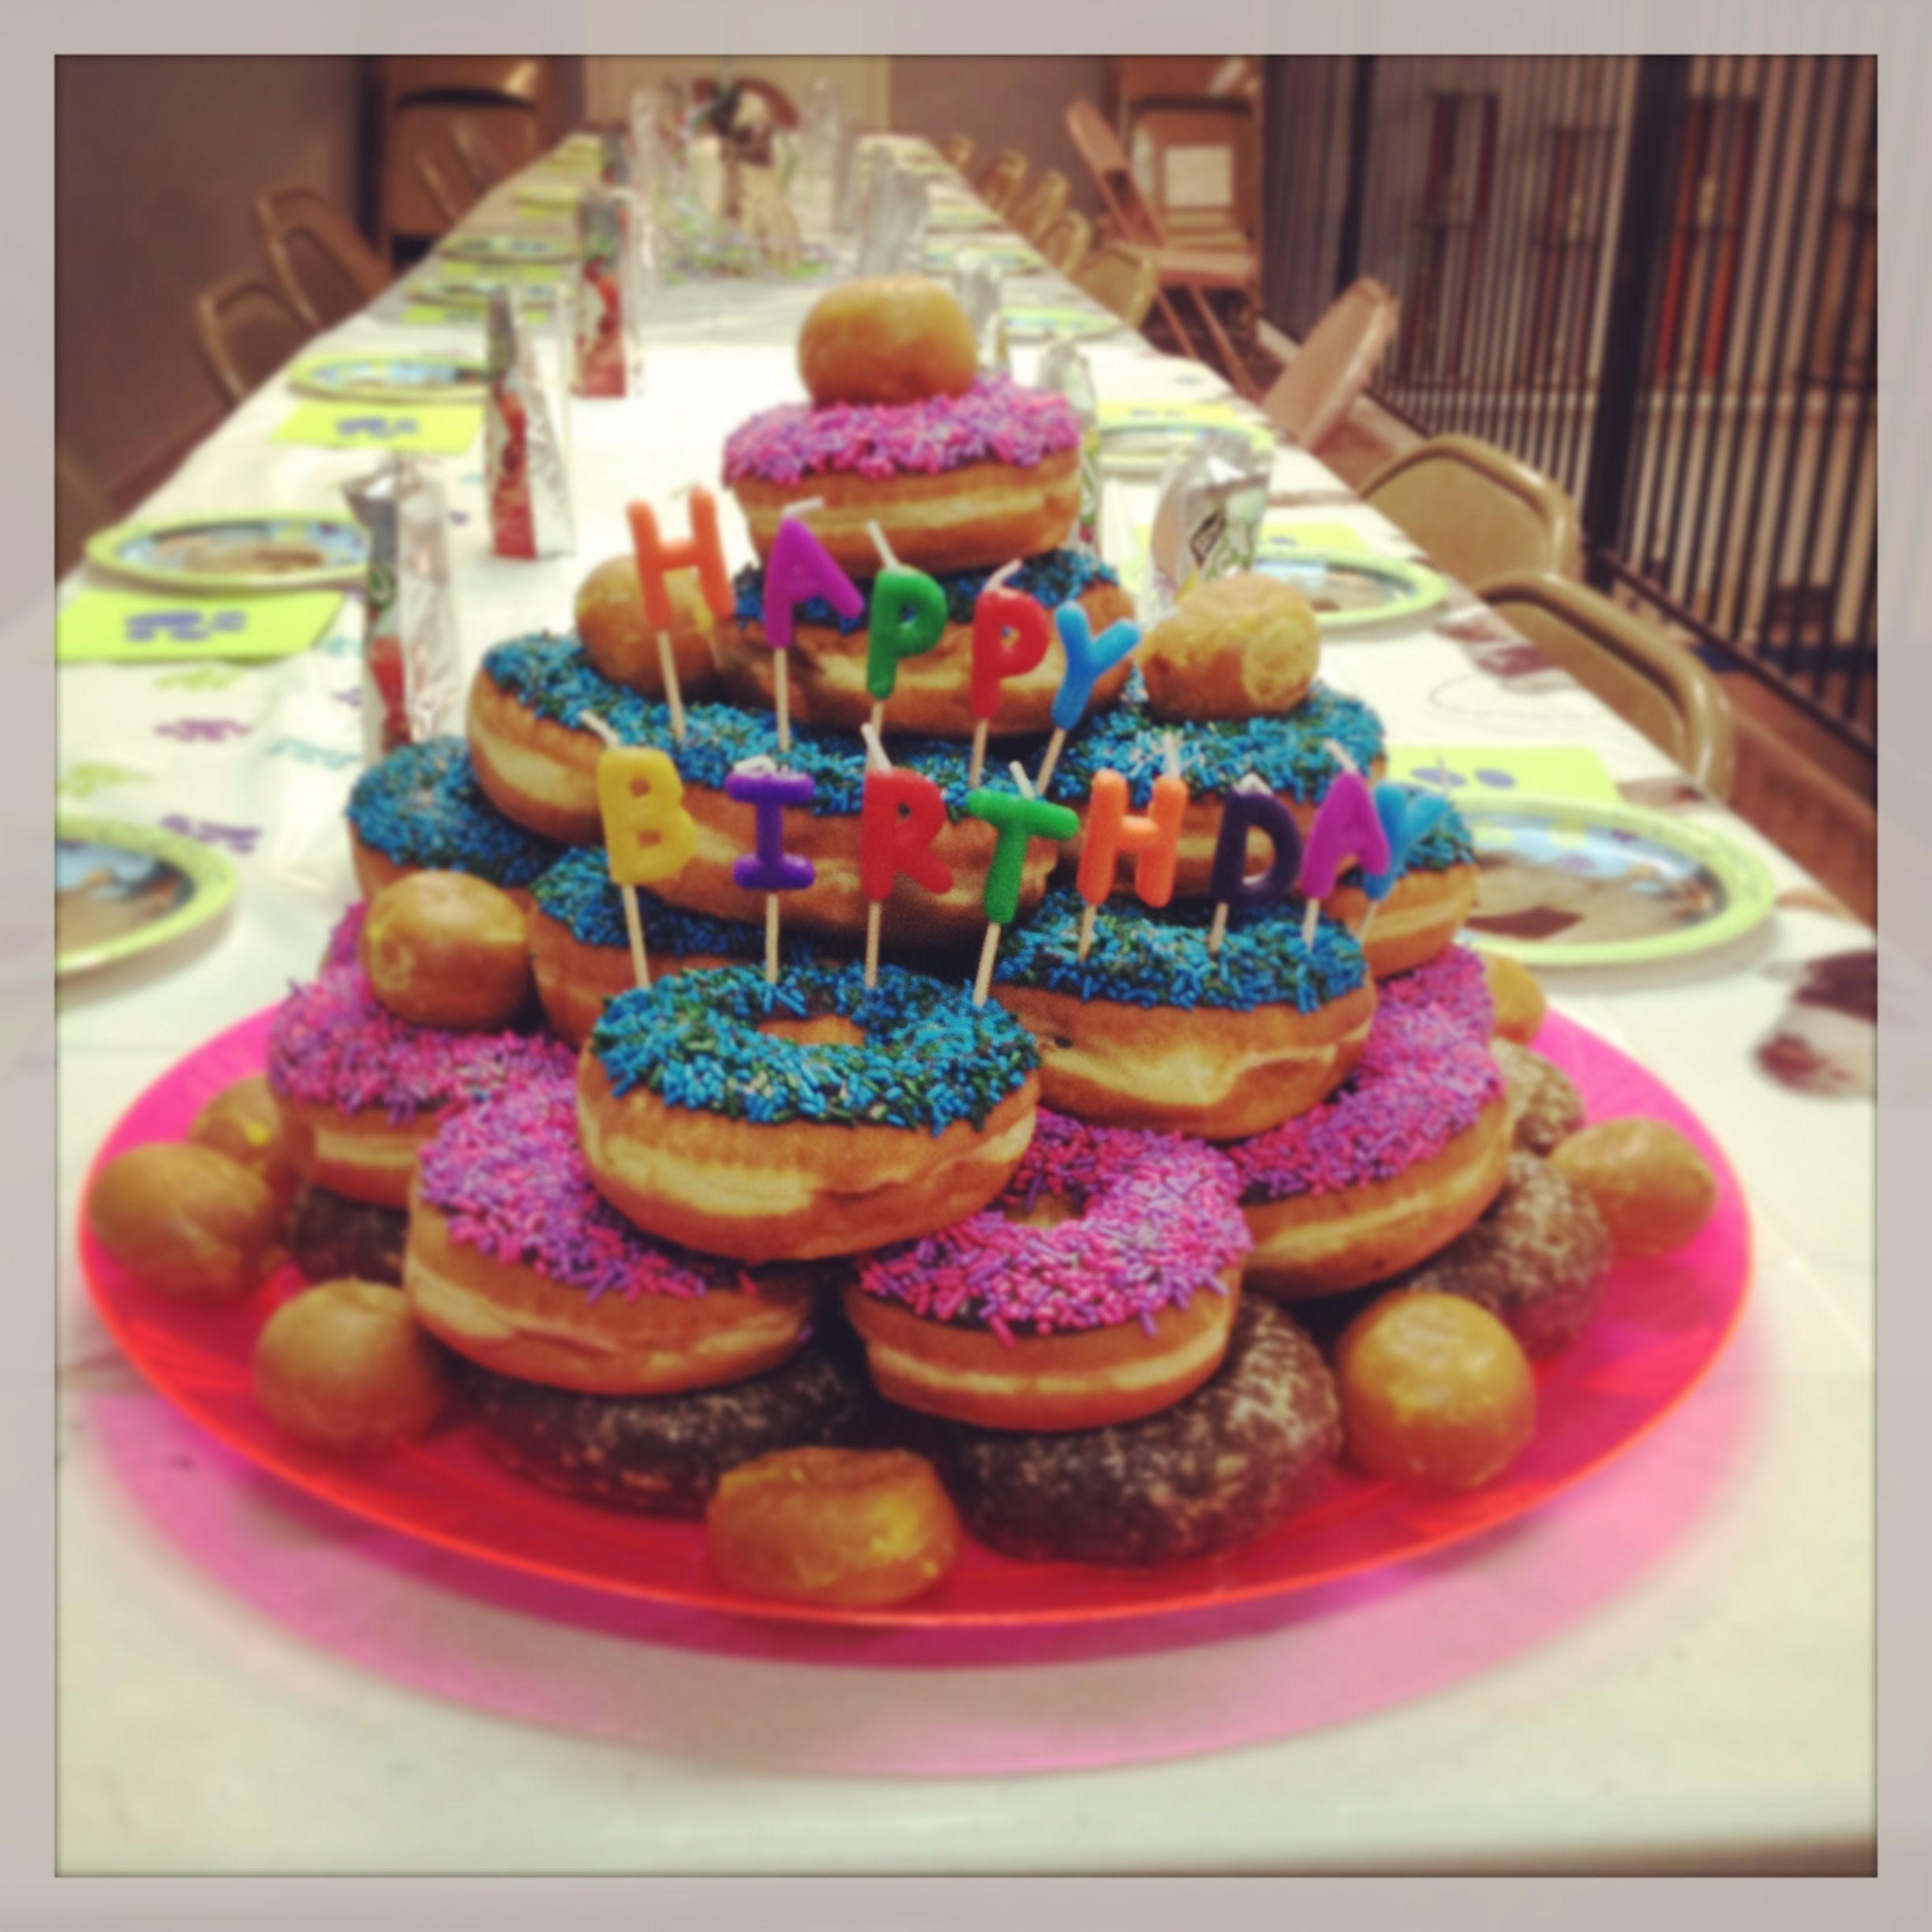 The Doughnut Quot Cake Quot I Made For My Daughter S Birthday A